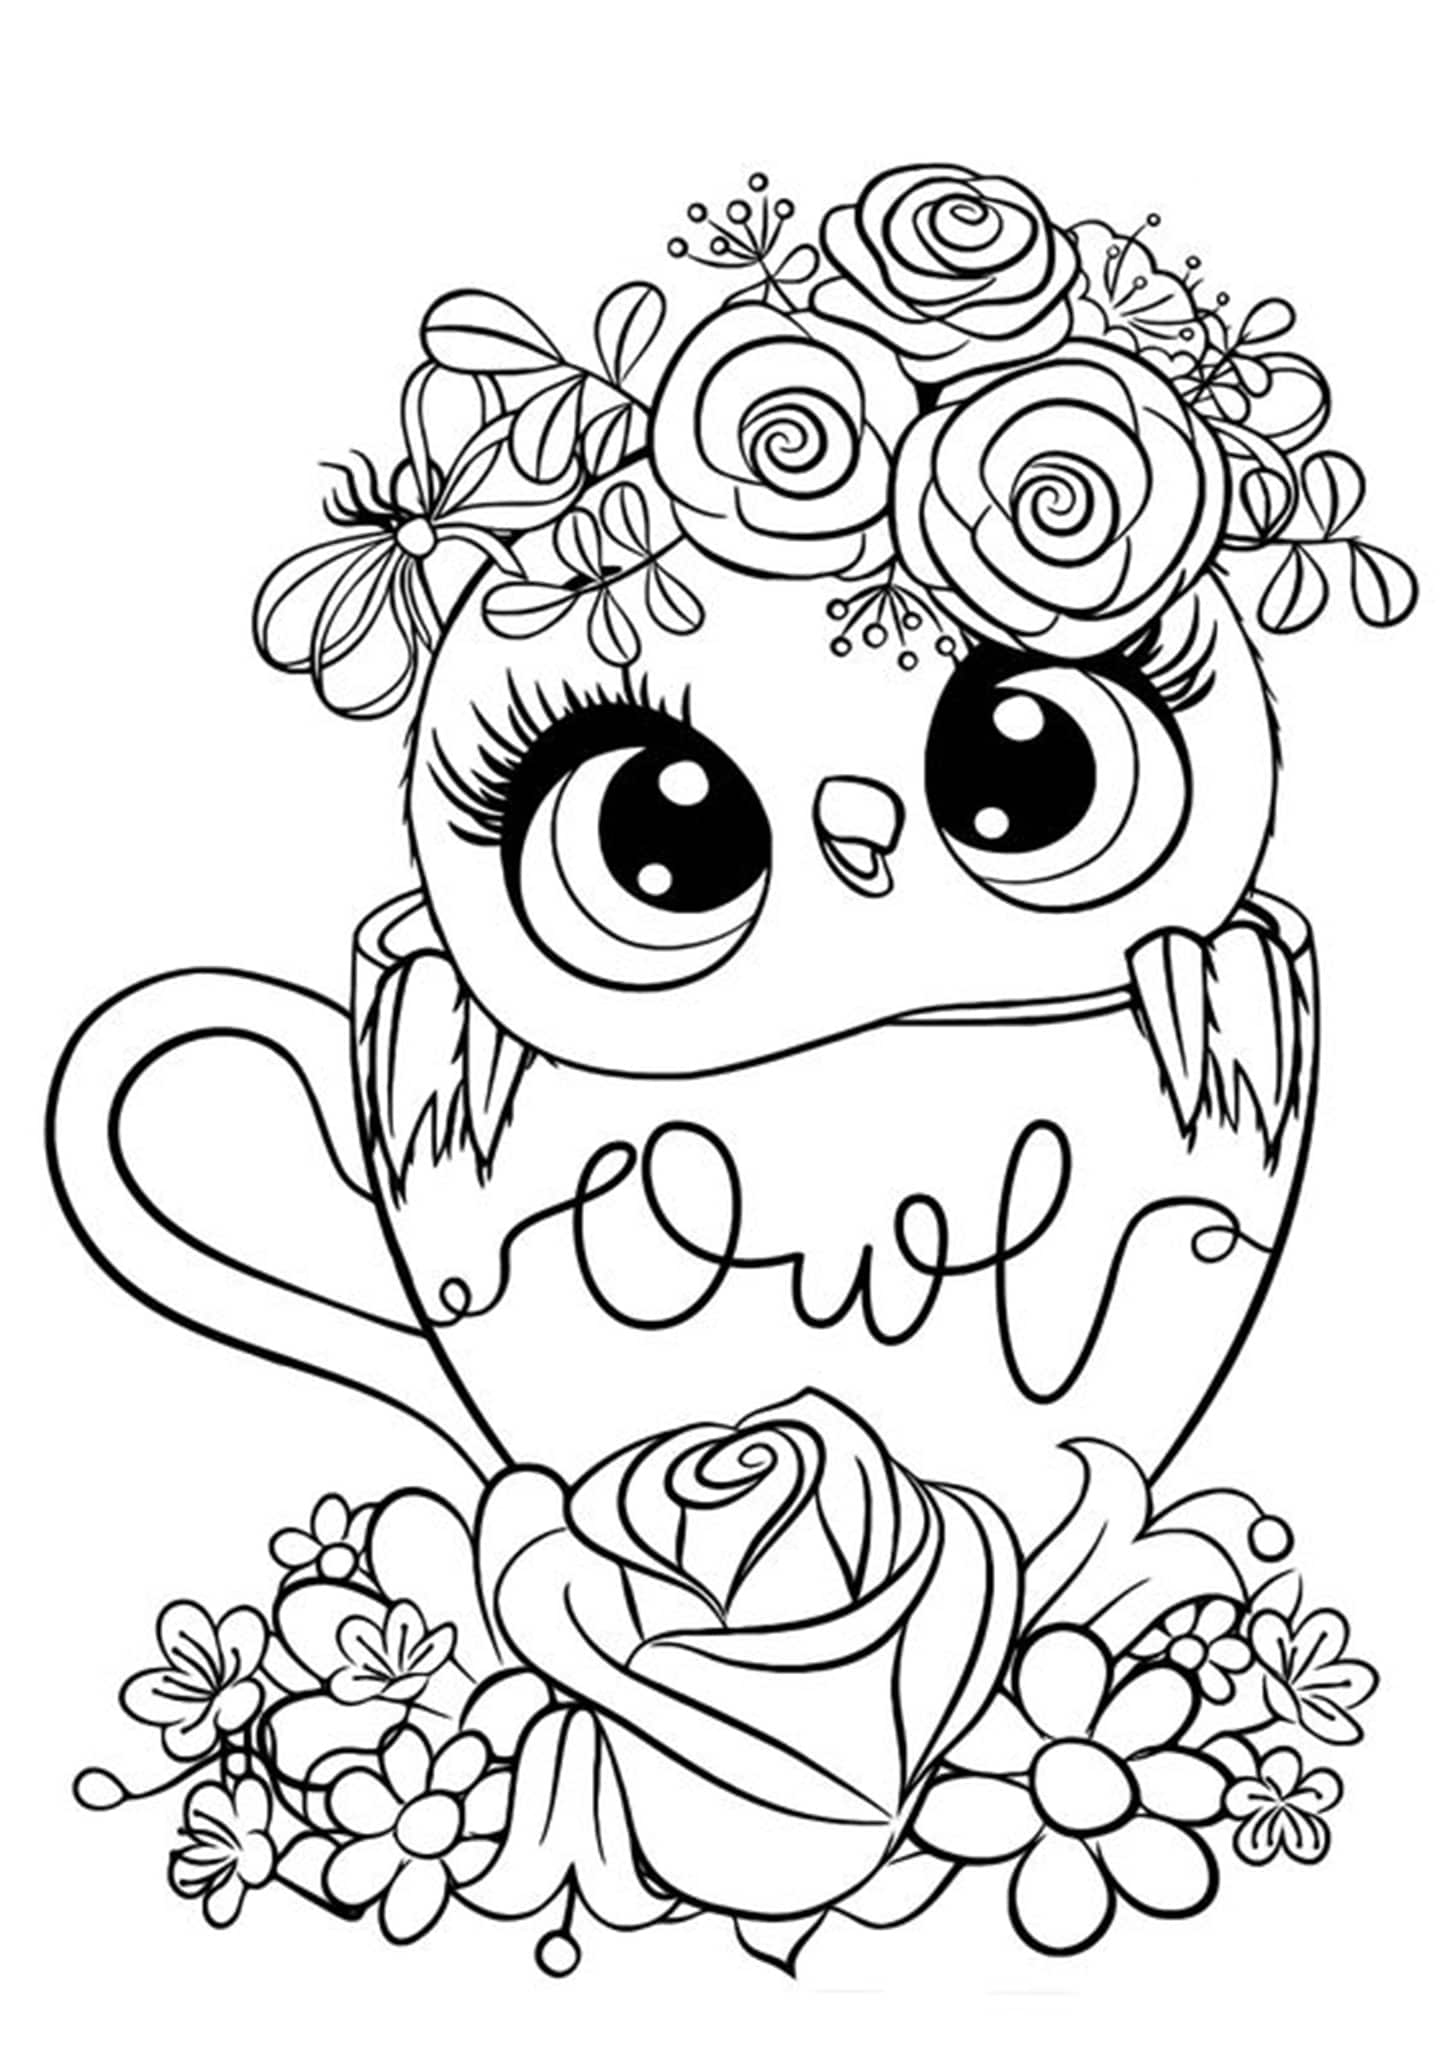 Free & Easy To Print Owl Coloring Pages - Tulamama